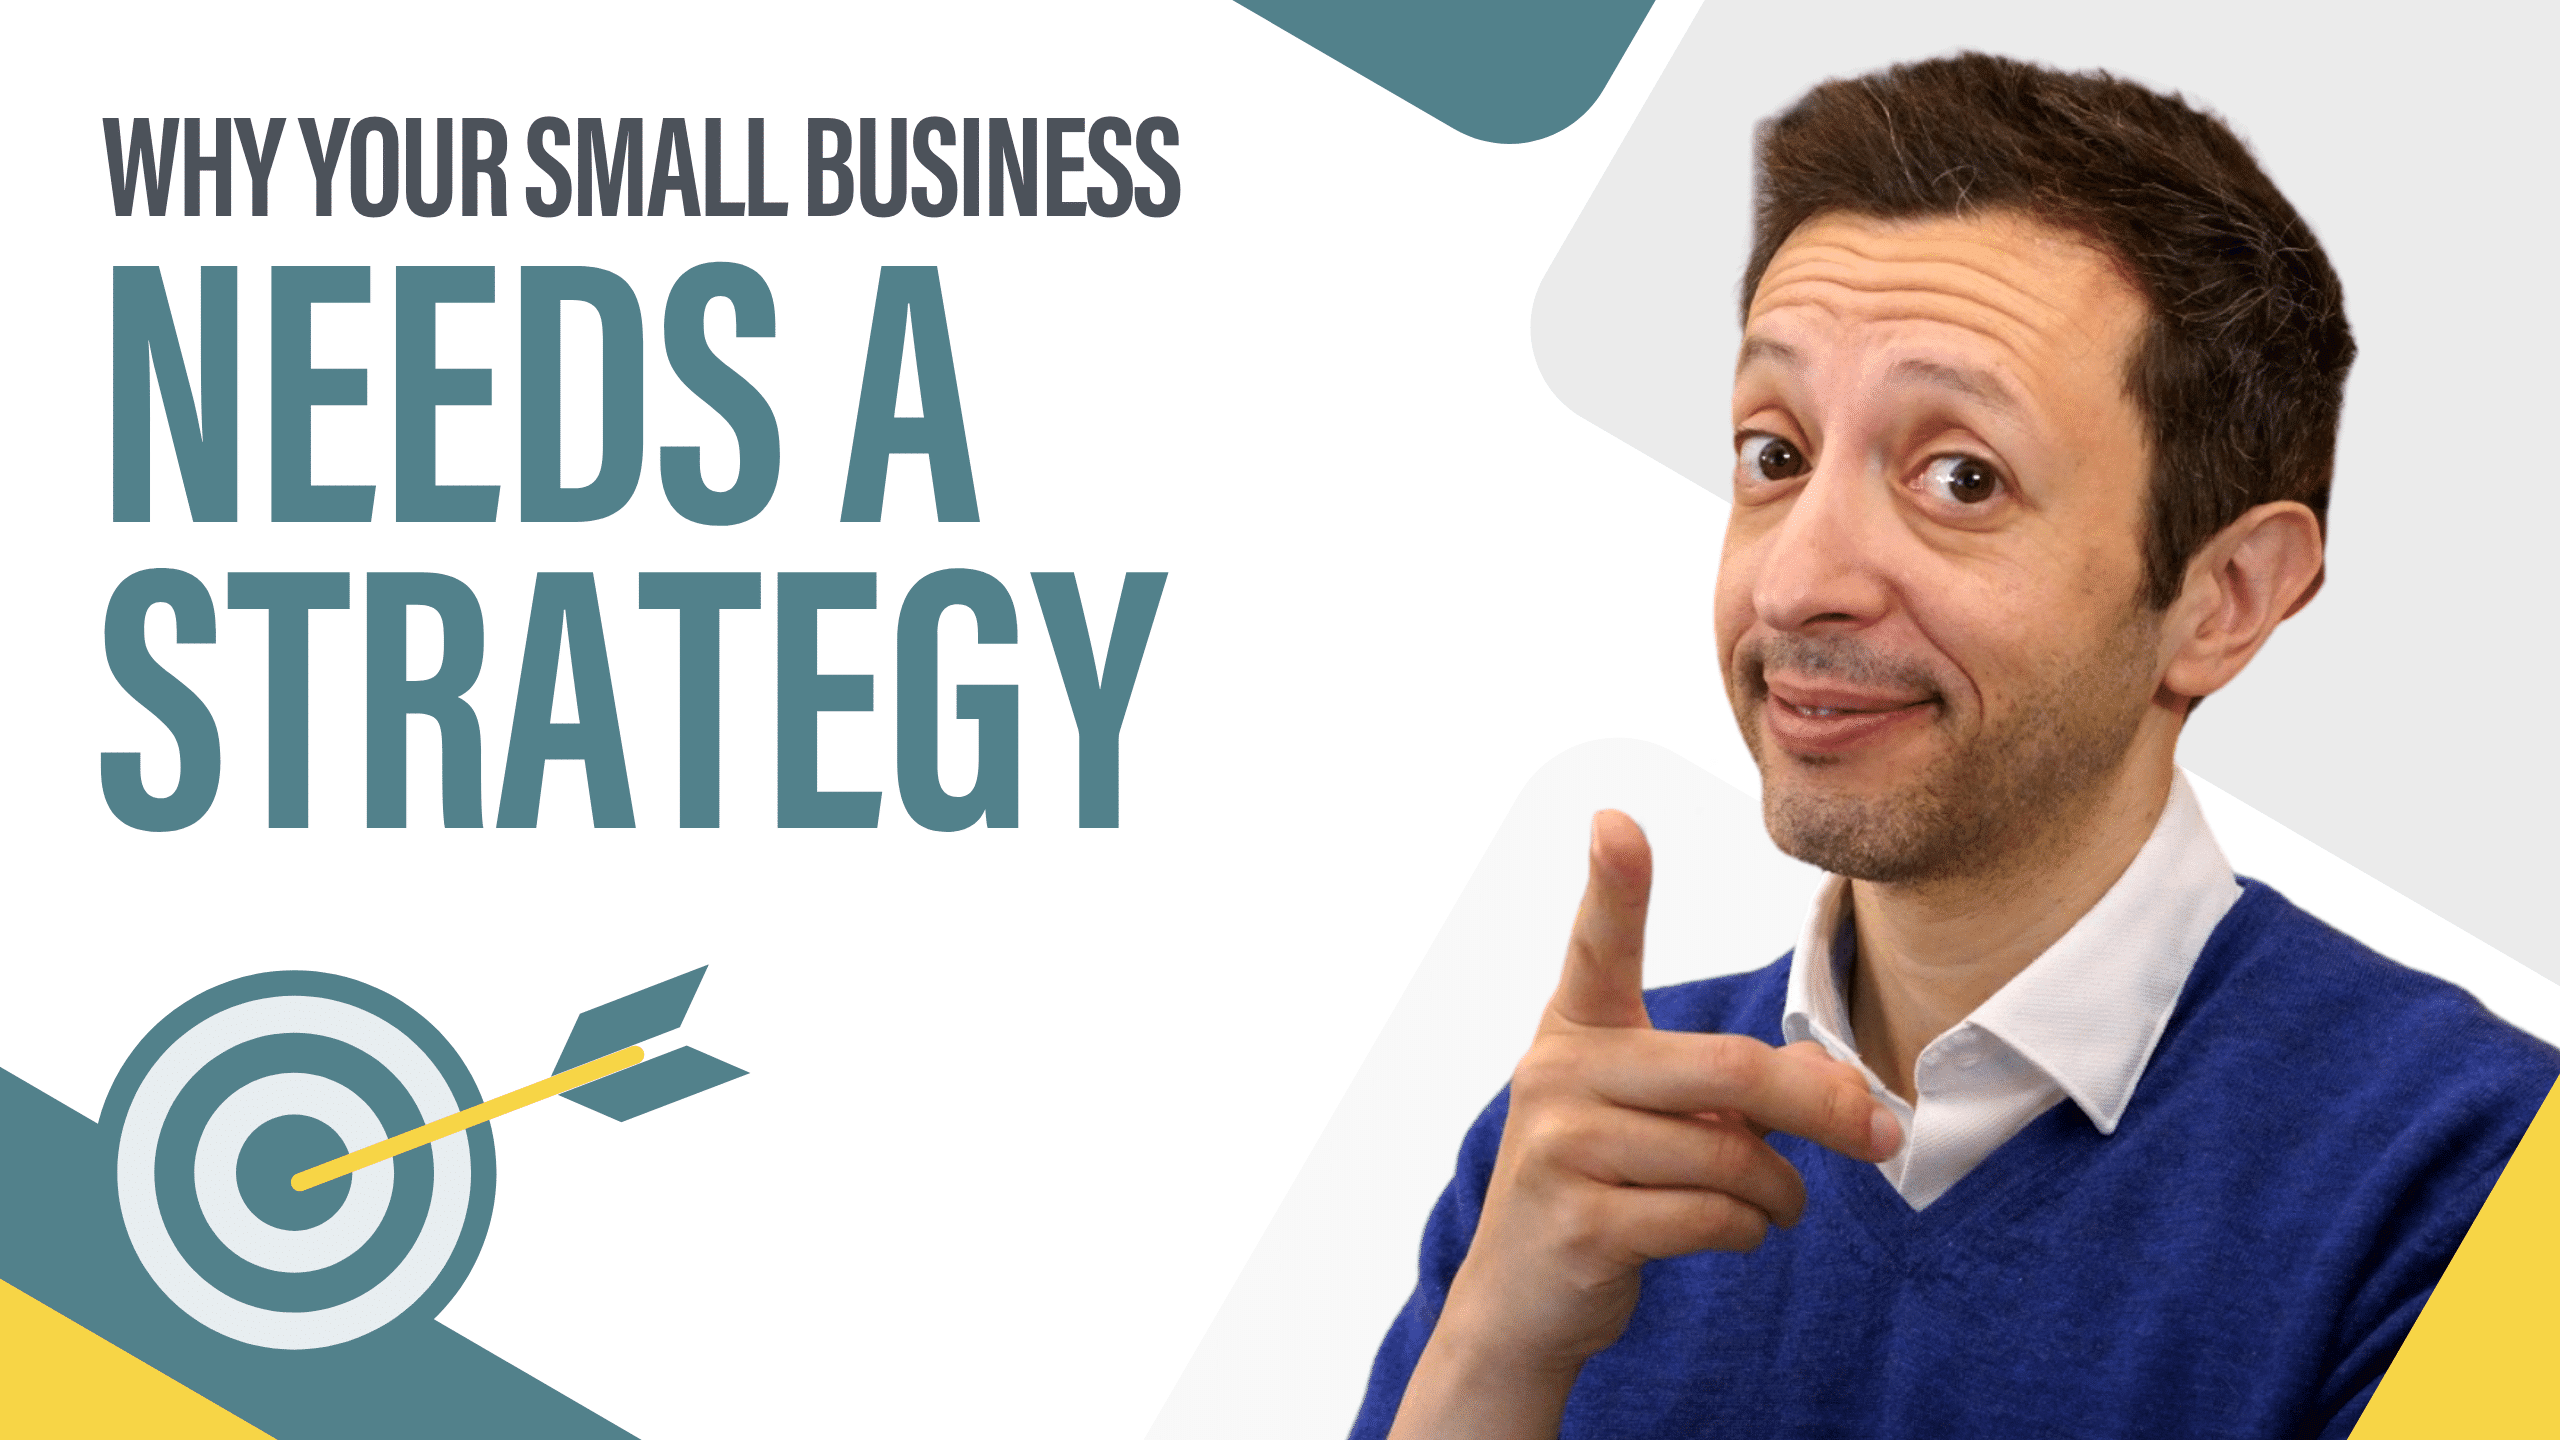 Why Your Small Business Needs A Strategy